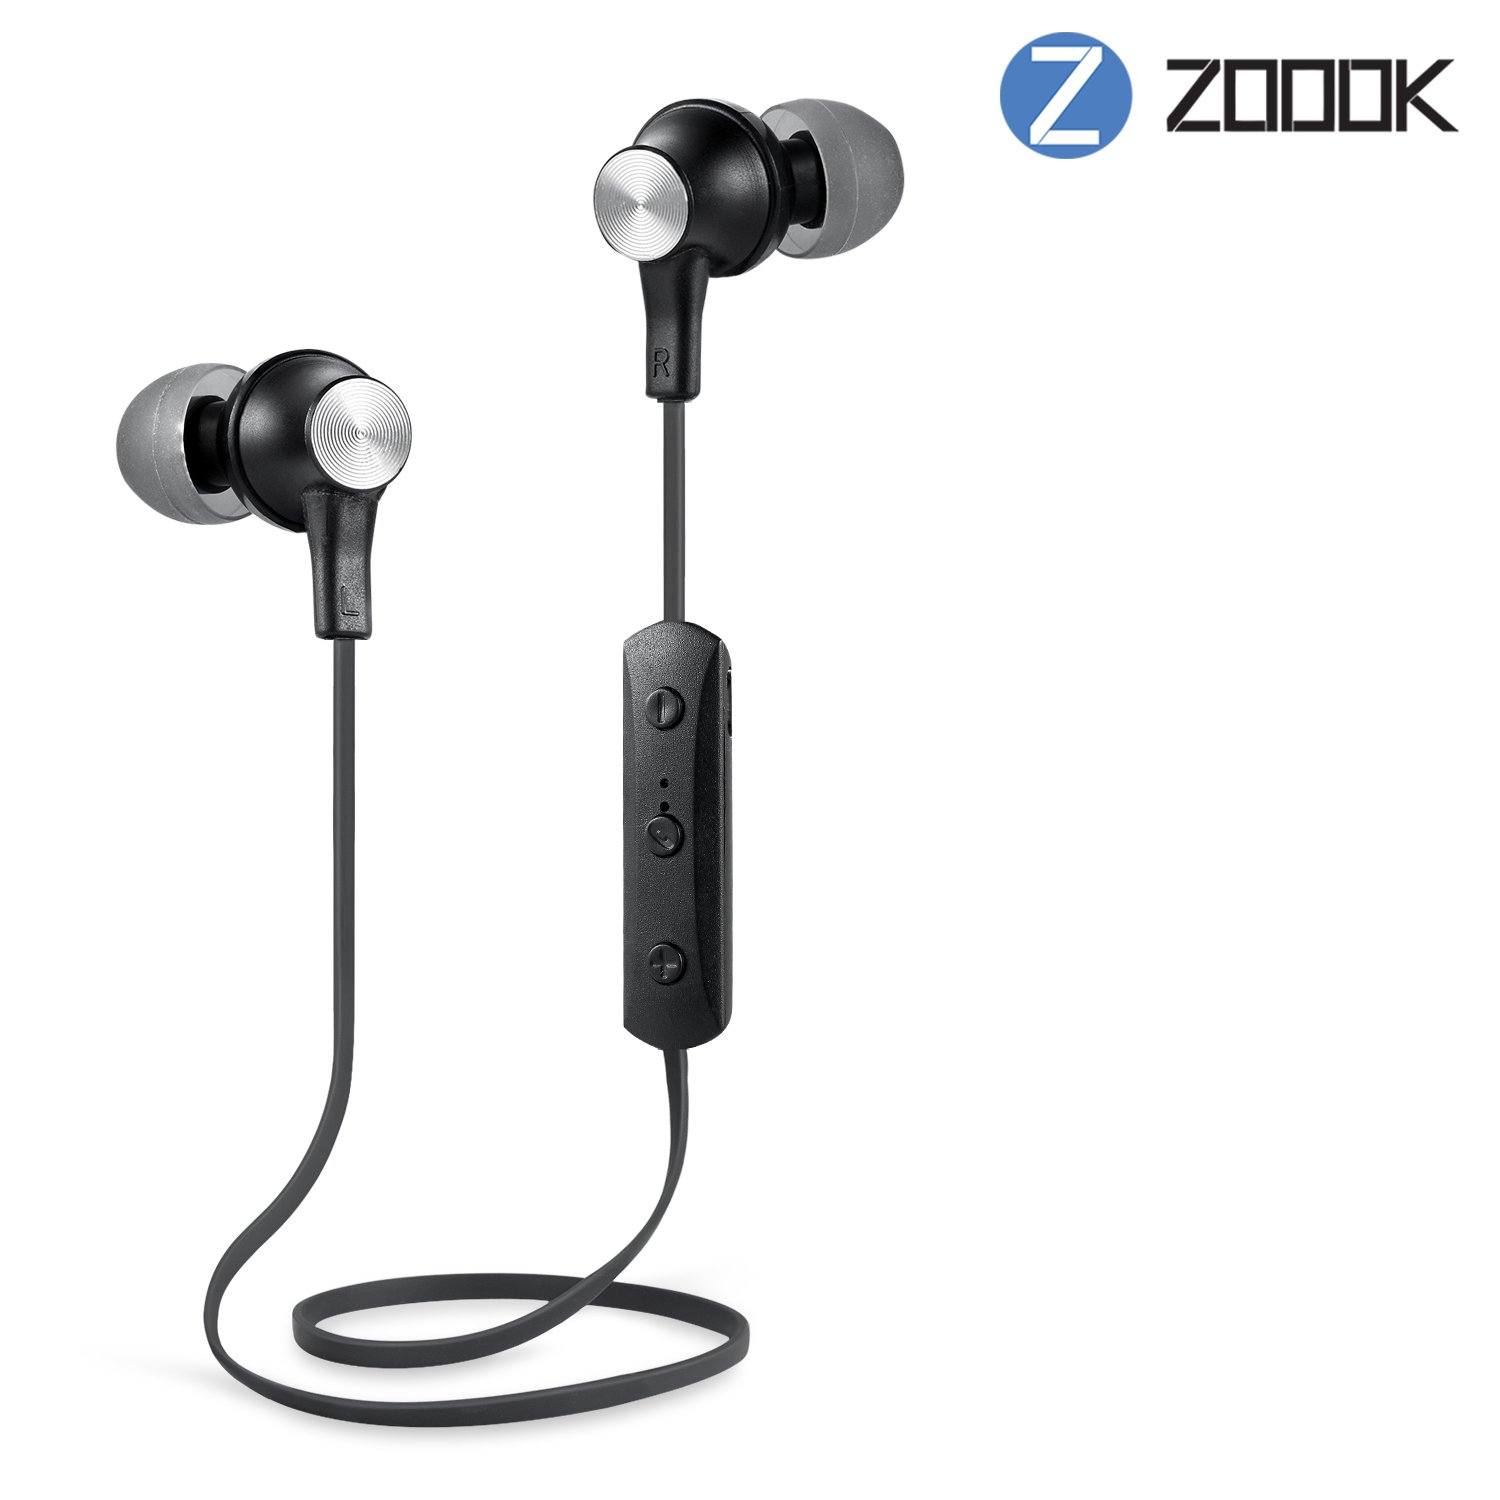 Zoook ZB-BE1 Bluetooth Headset